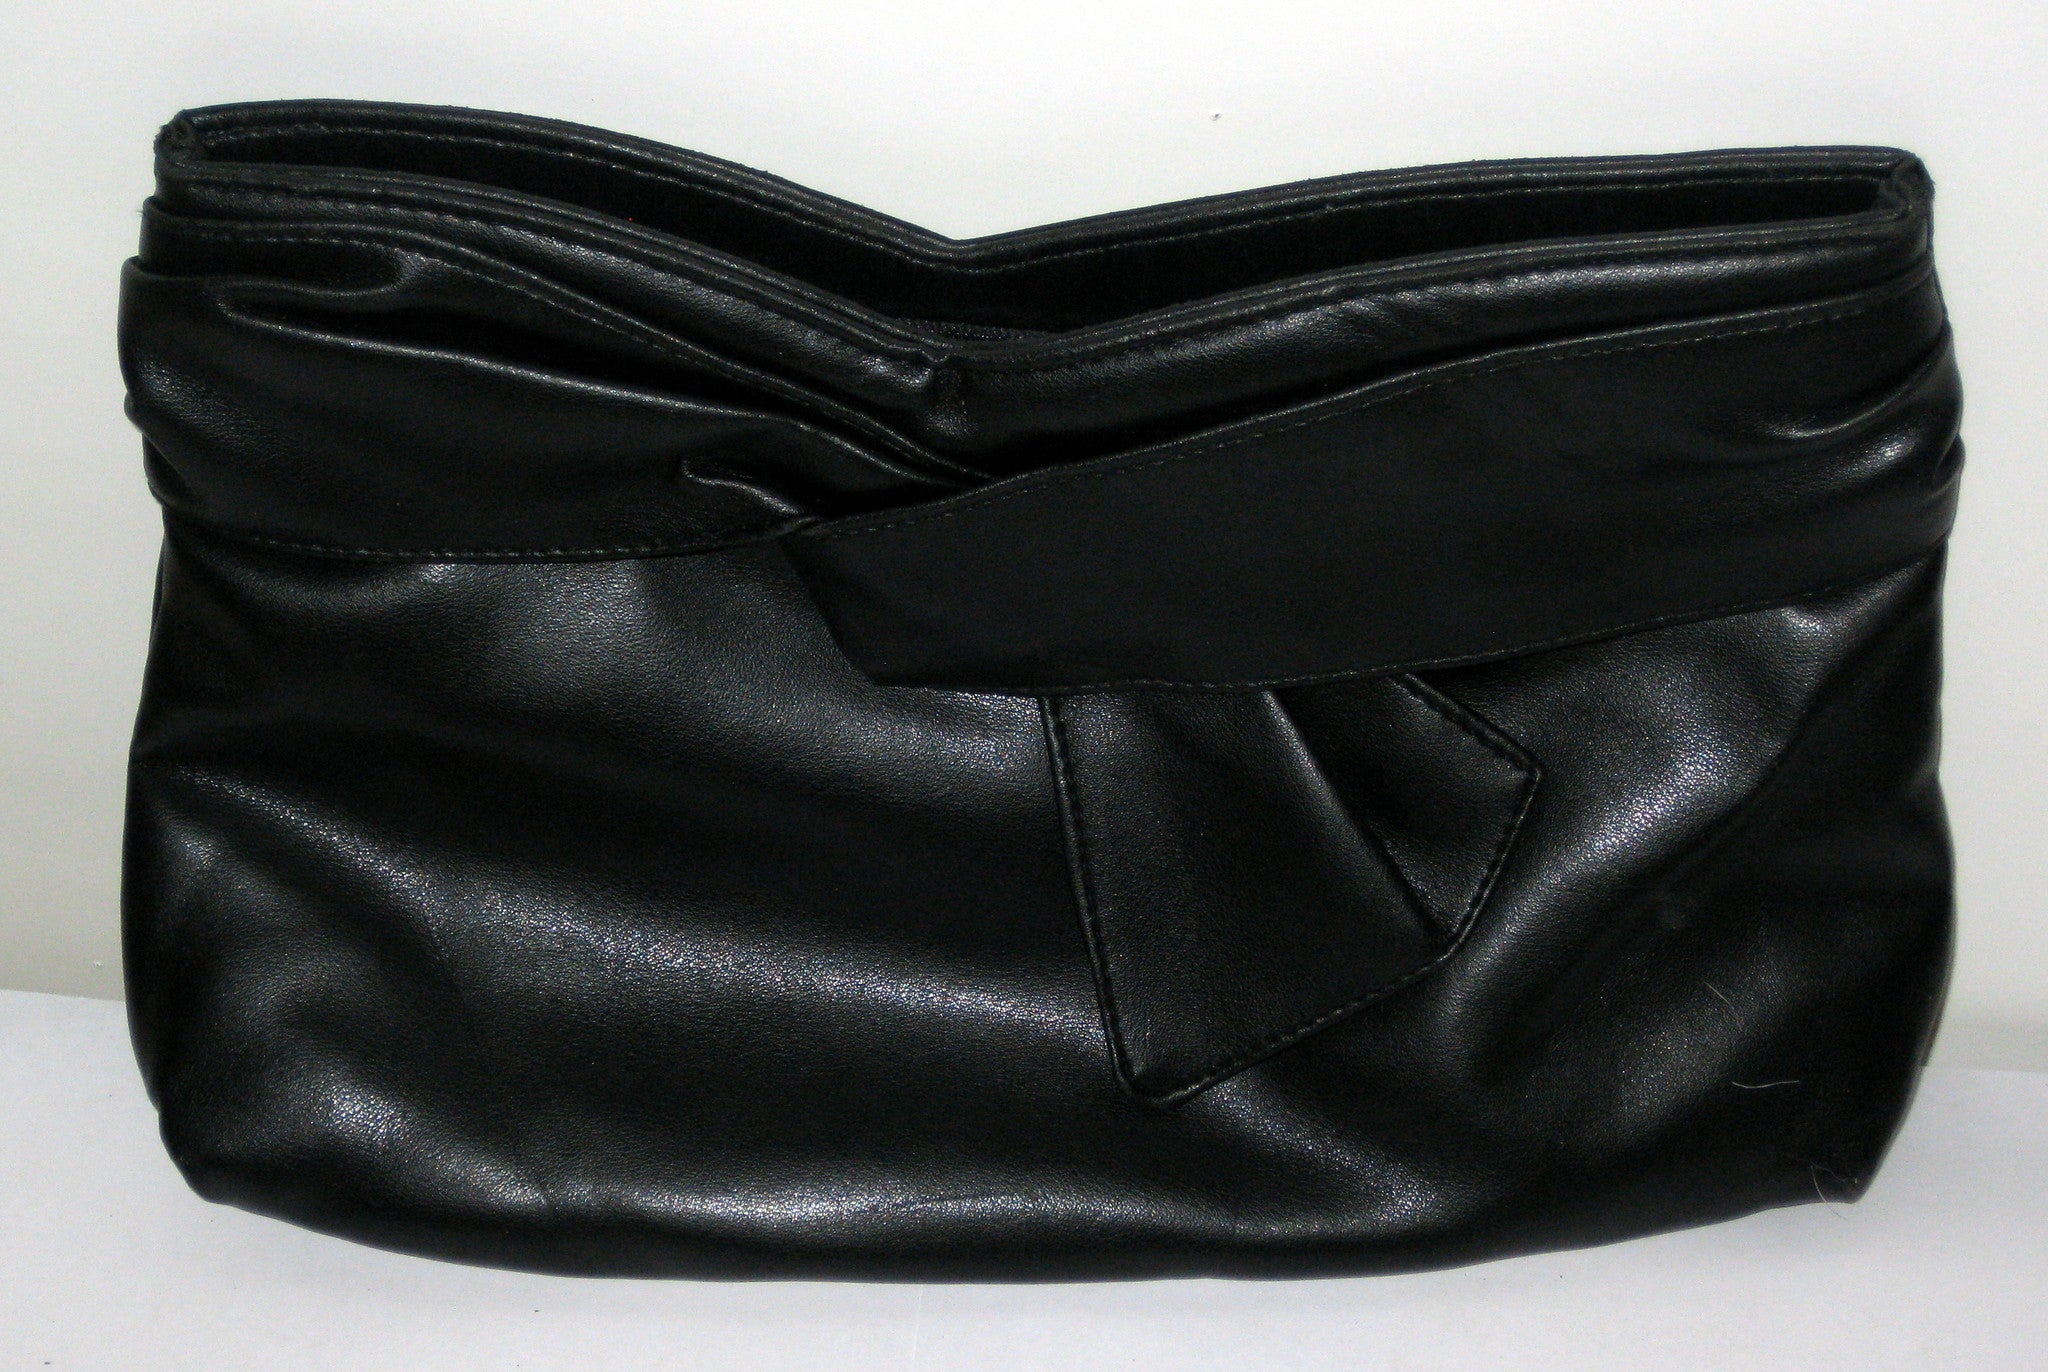 Vintage Black Sash Leather Clutch Purse